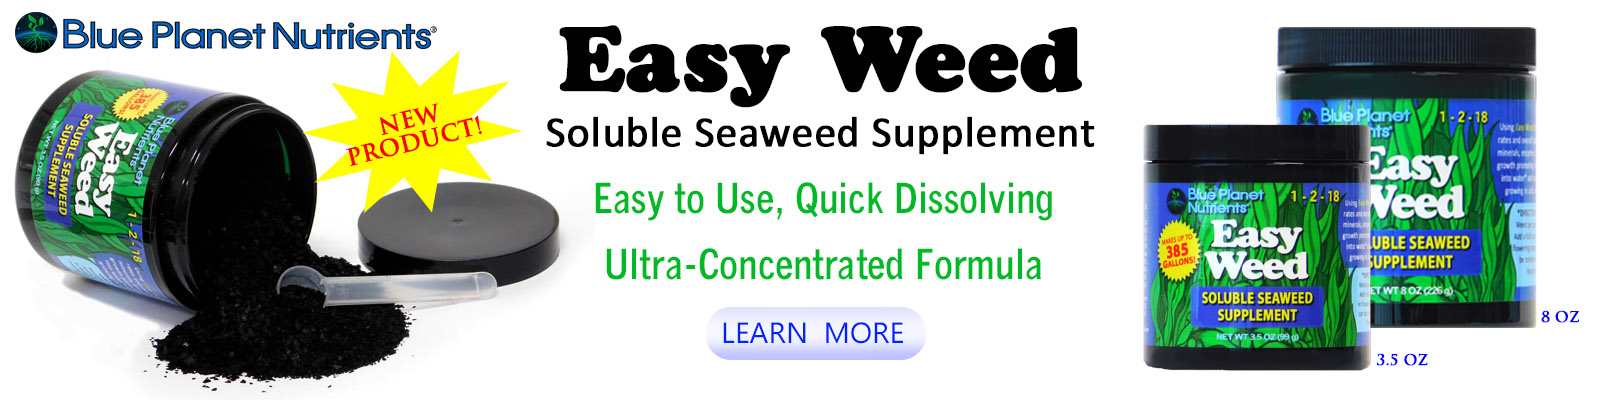 Easy Weed soluble seaweed